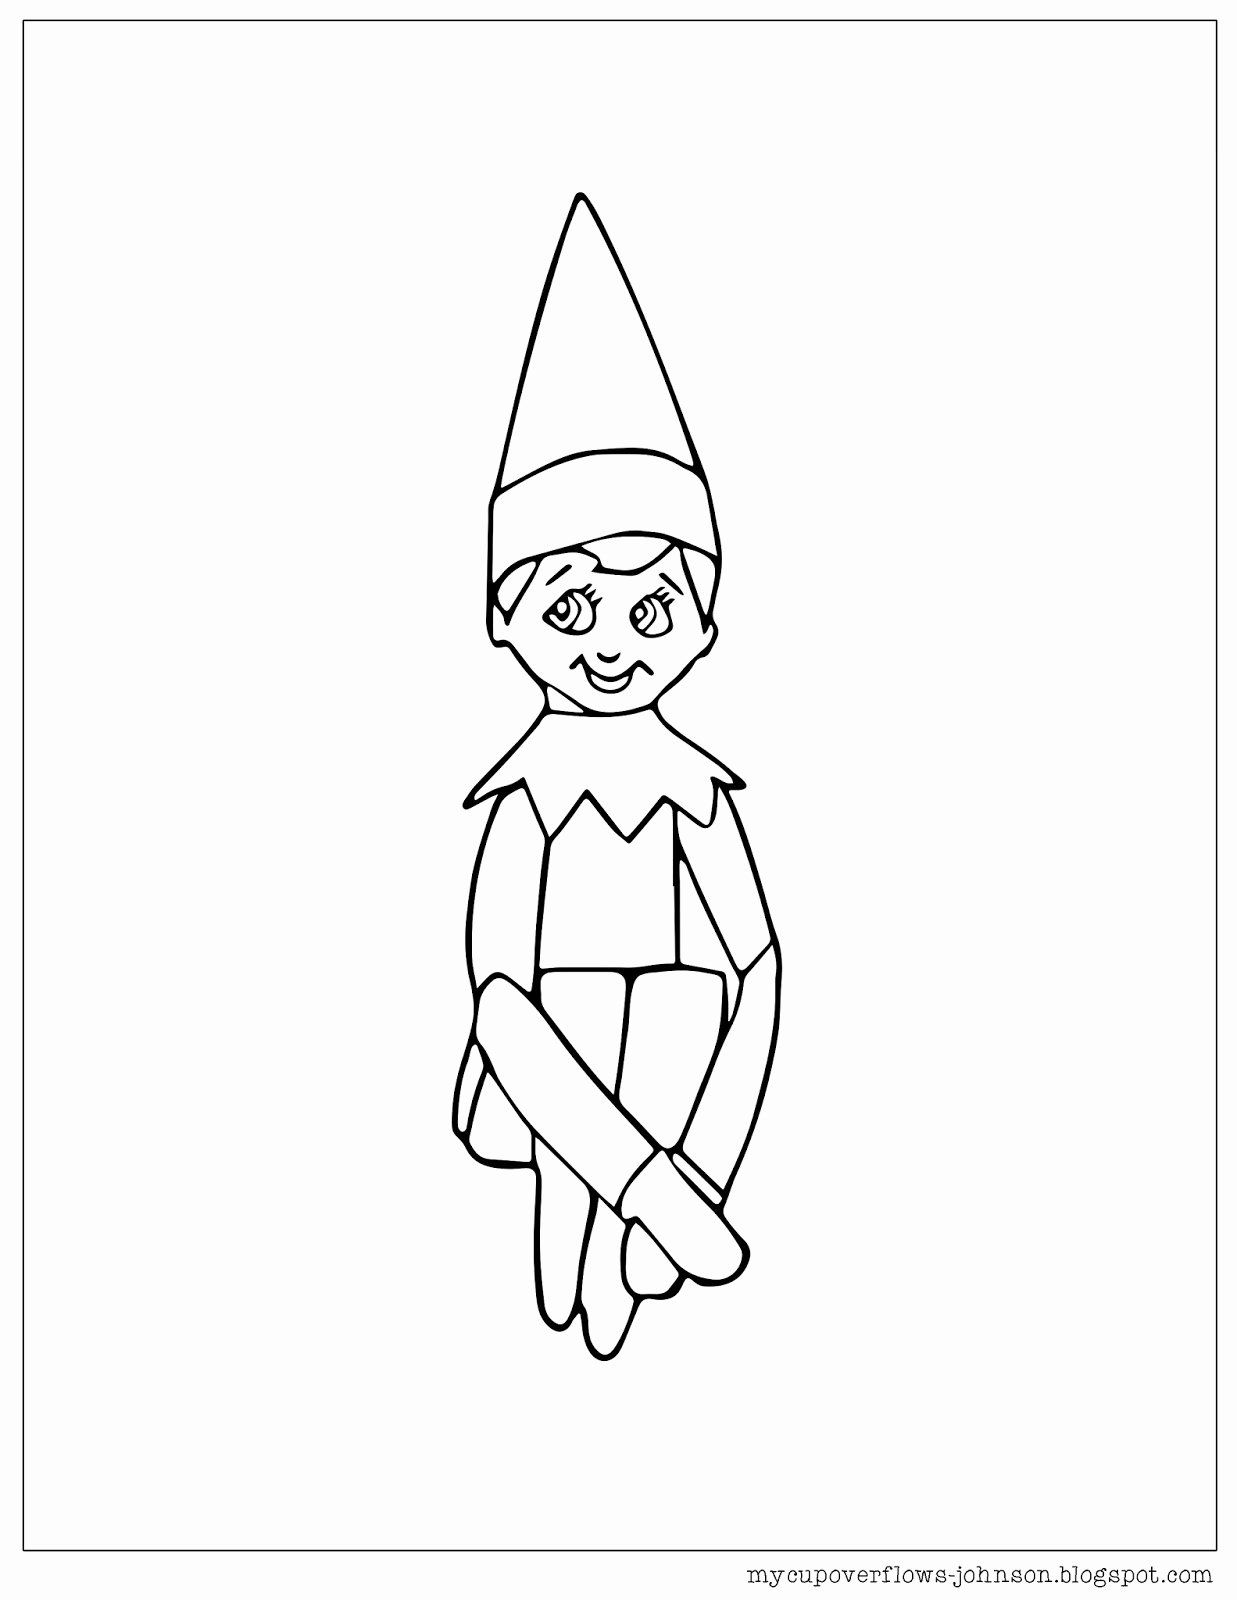 Elf On The Shelf Coloring Page New My Cup Overflows December 2017